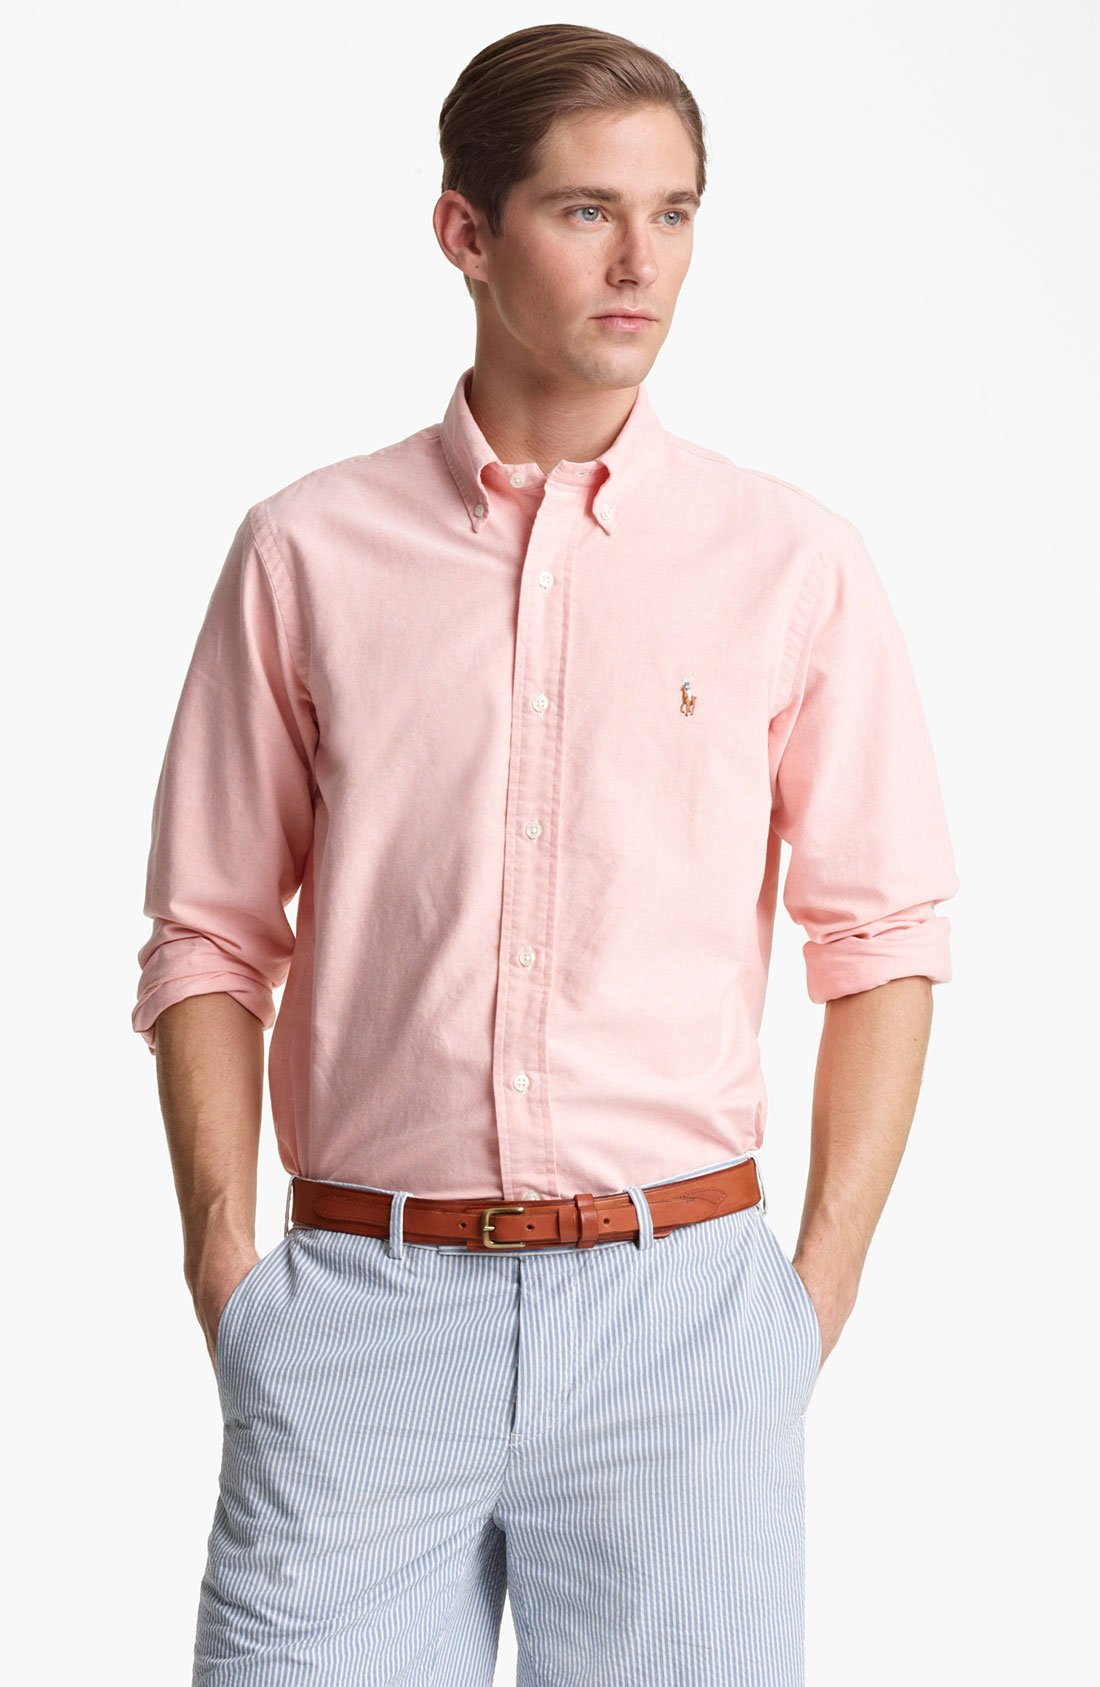 Lyst polo ralph lauren custom fit oxford shirt in pink for Pink oxford shirt men